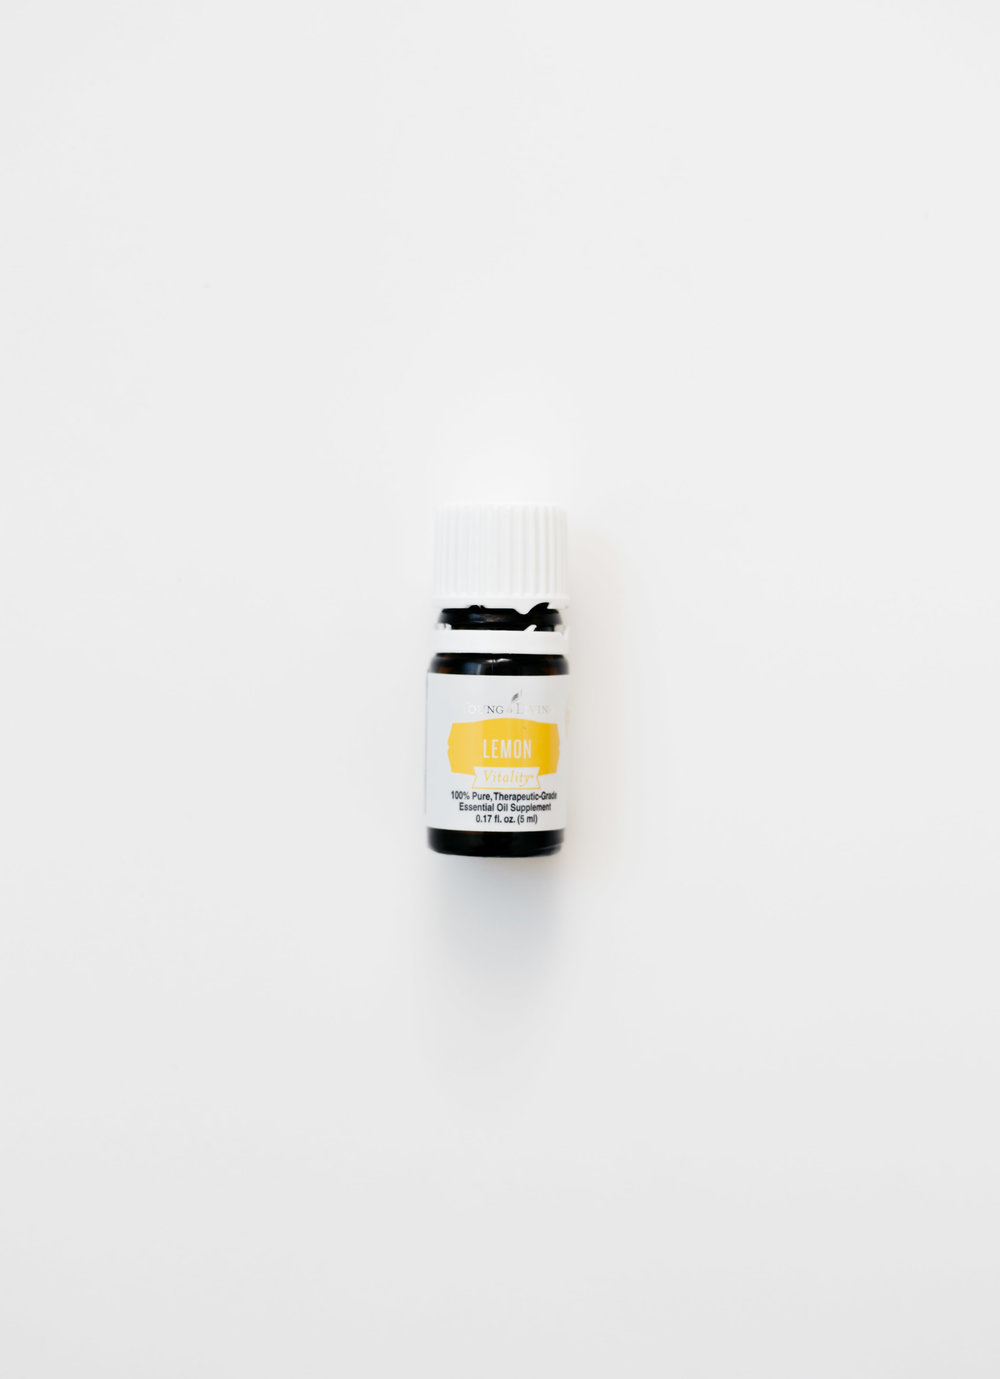 Lemon Vitality - Lemon is one of the key components in many popular essential oil-infused products, and I use it the most for cleaning and stain removal. I also add it to sparkling water for an extra refresher